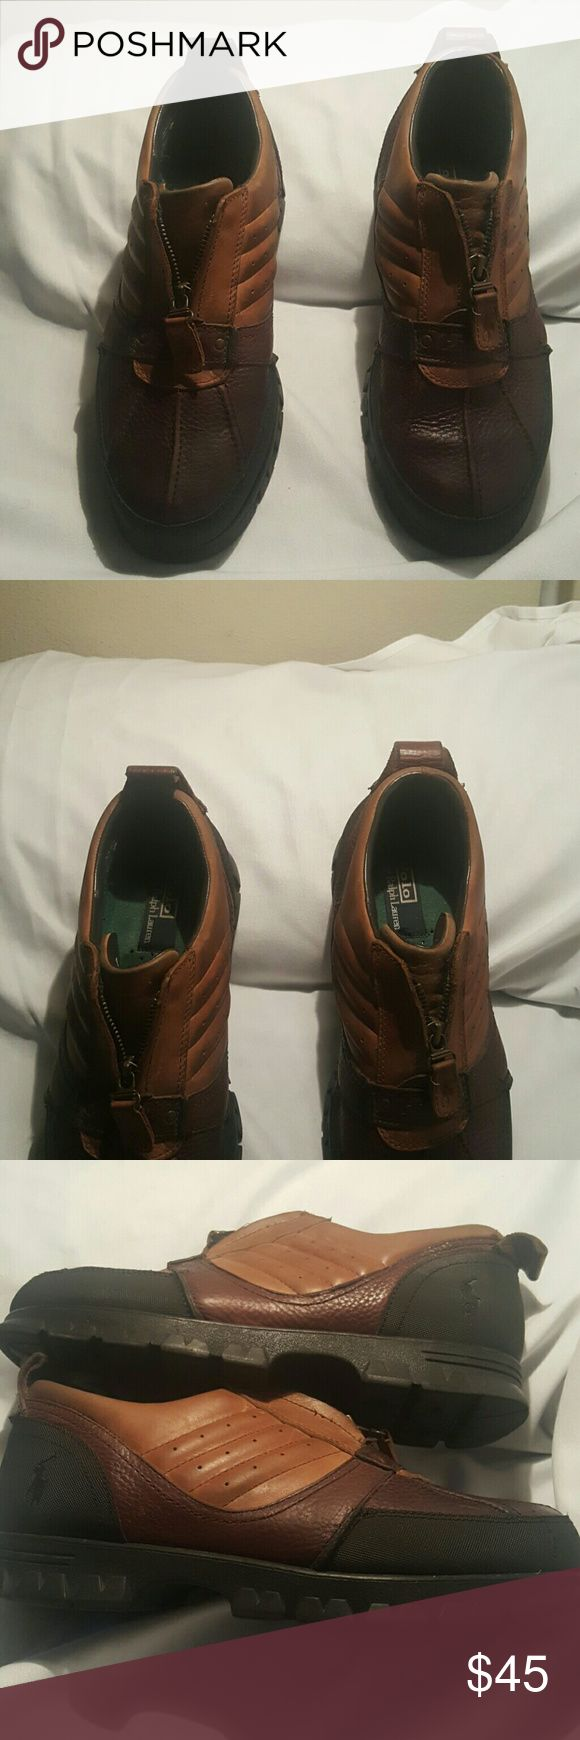 Ralph Lauren Tan & Brown  Leather shoes Like new. Zip up front. Polo by Ralph Lauren Shoes Boat Shoes